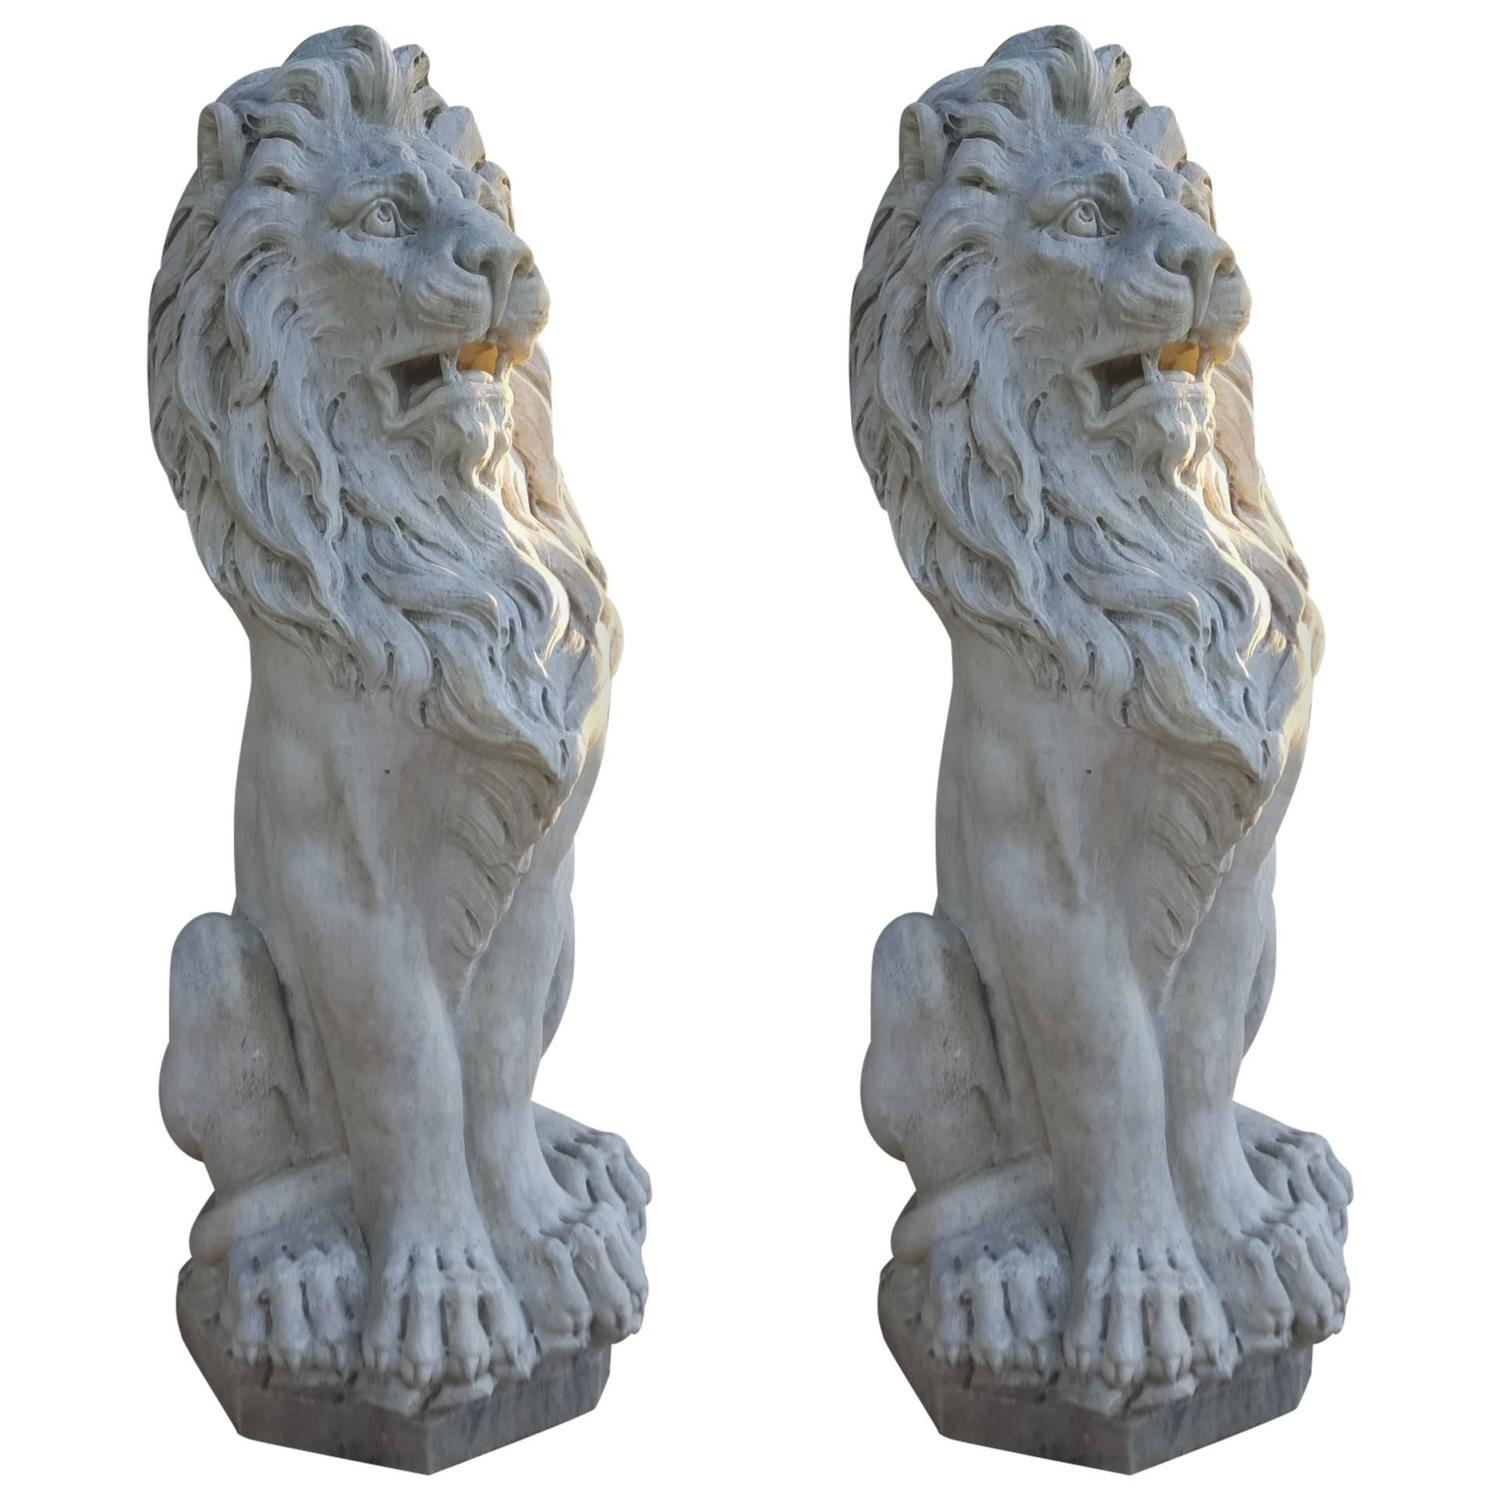 Charmant Pair Of 19th Century French Carrera Marble Lion Statues For Sale At 1stdibs